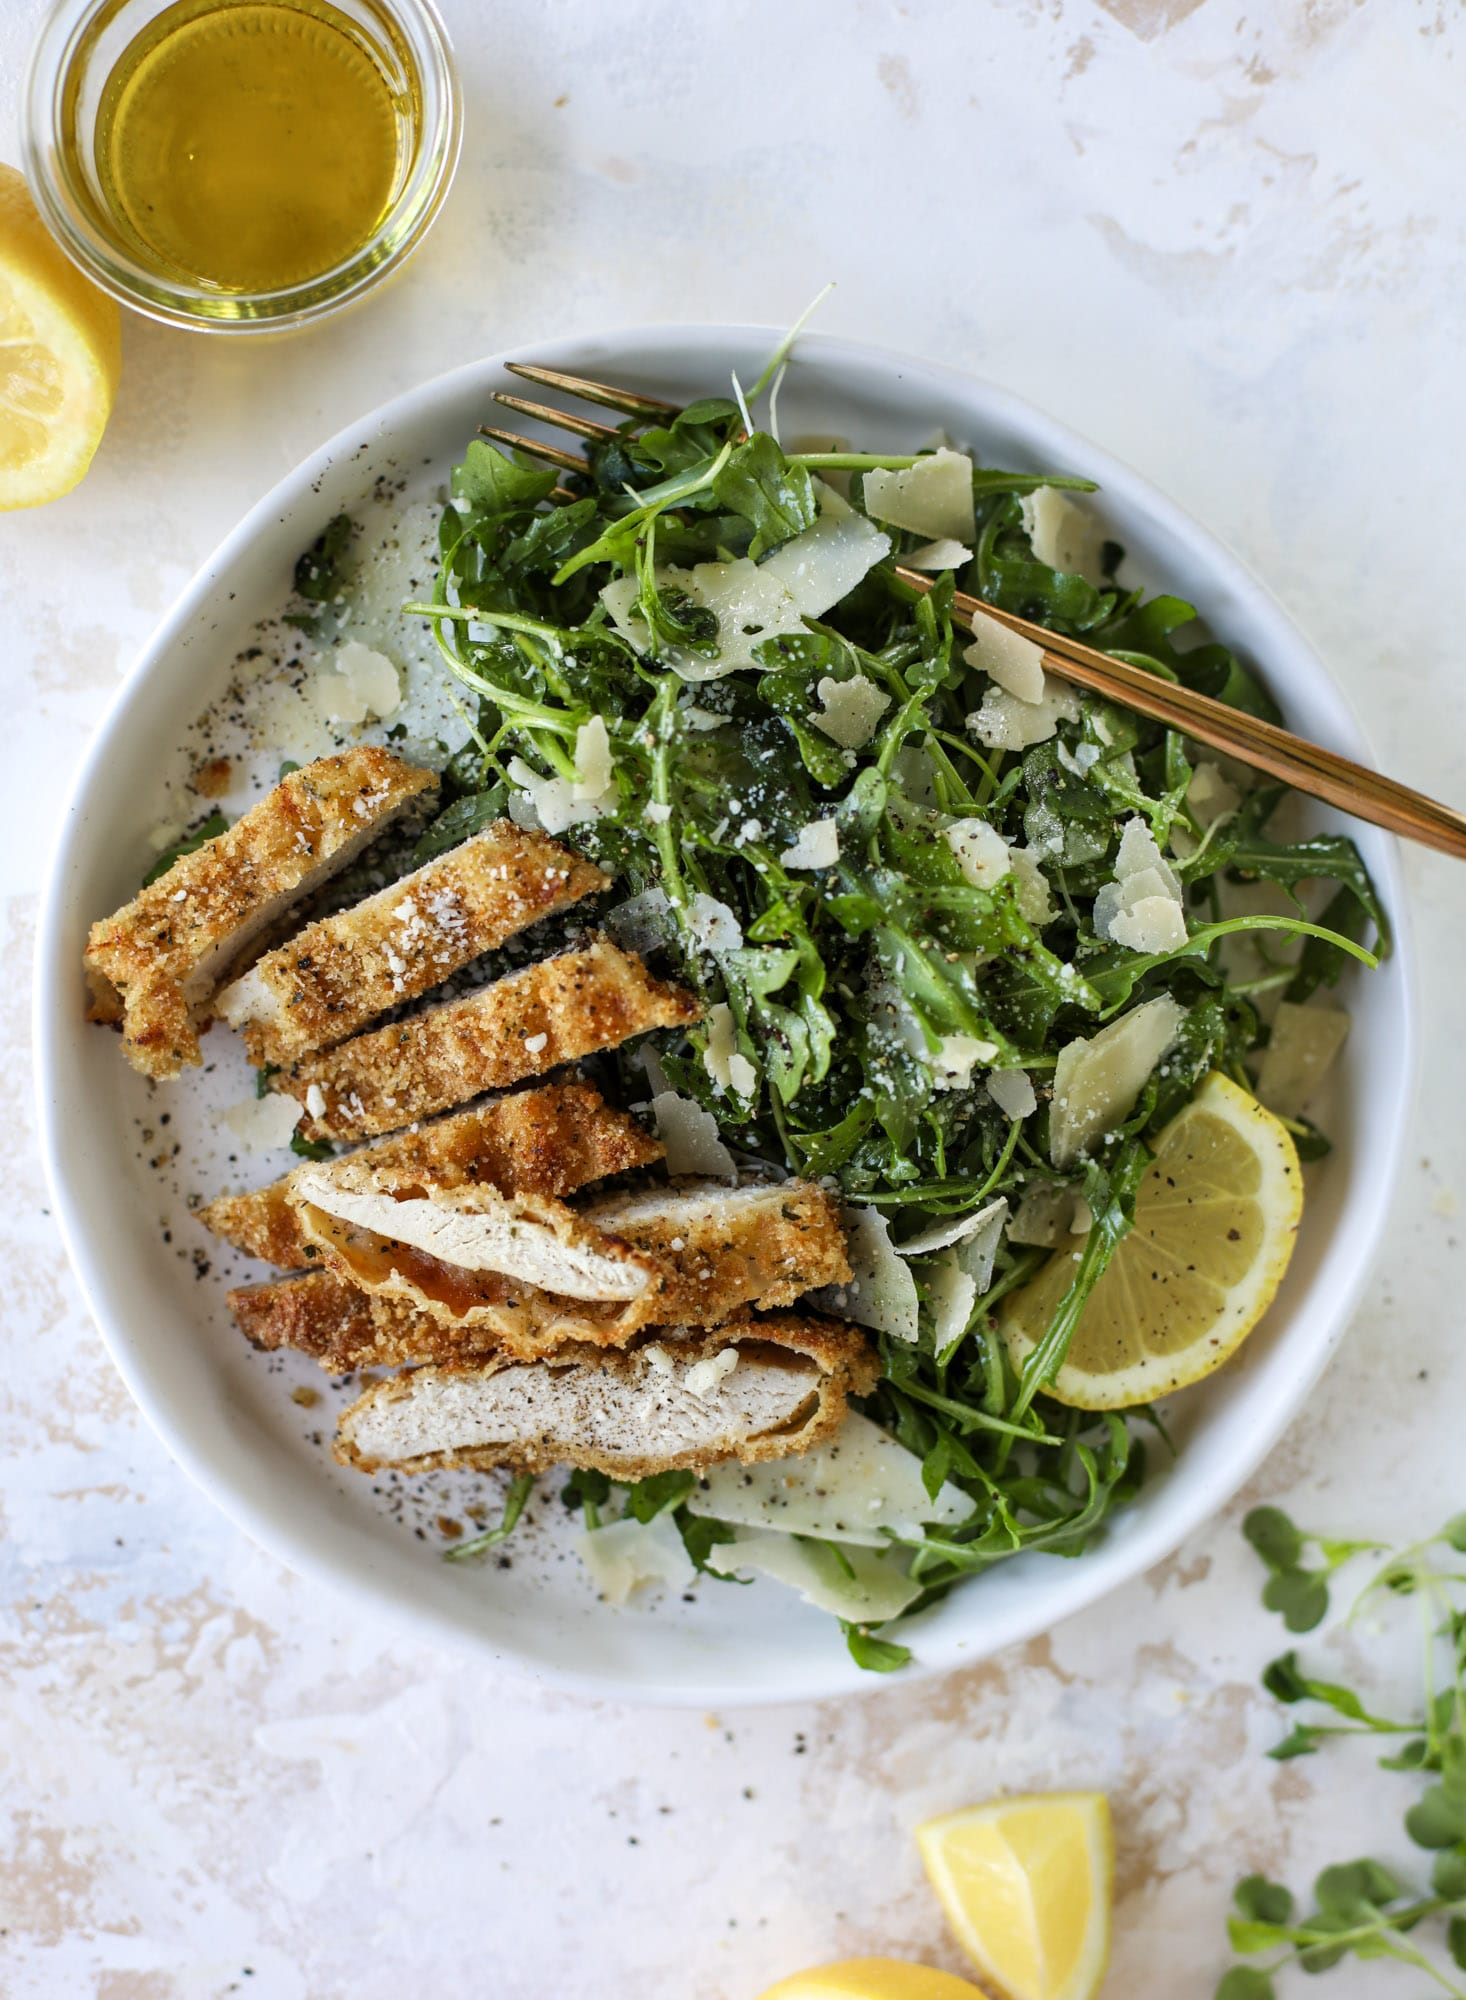 Crispy baked parmesan chicken is so super easy and delicious! It's an amazing weeknight meal served with a lemon arugula salad. Delish!